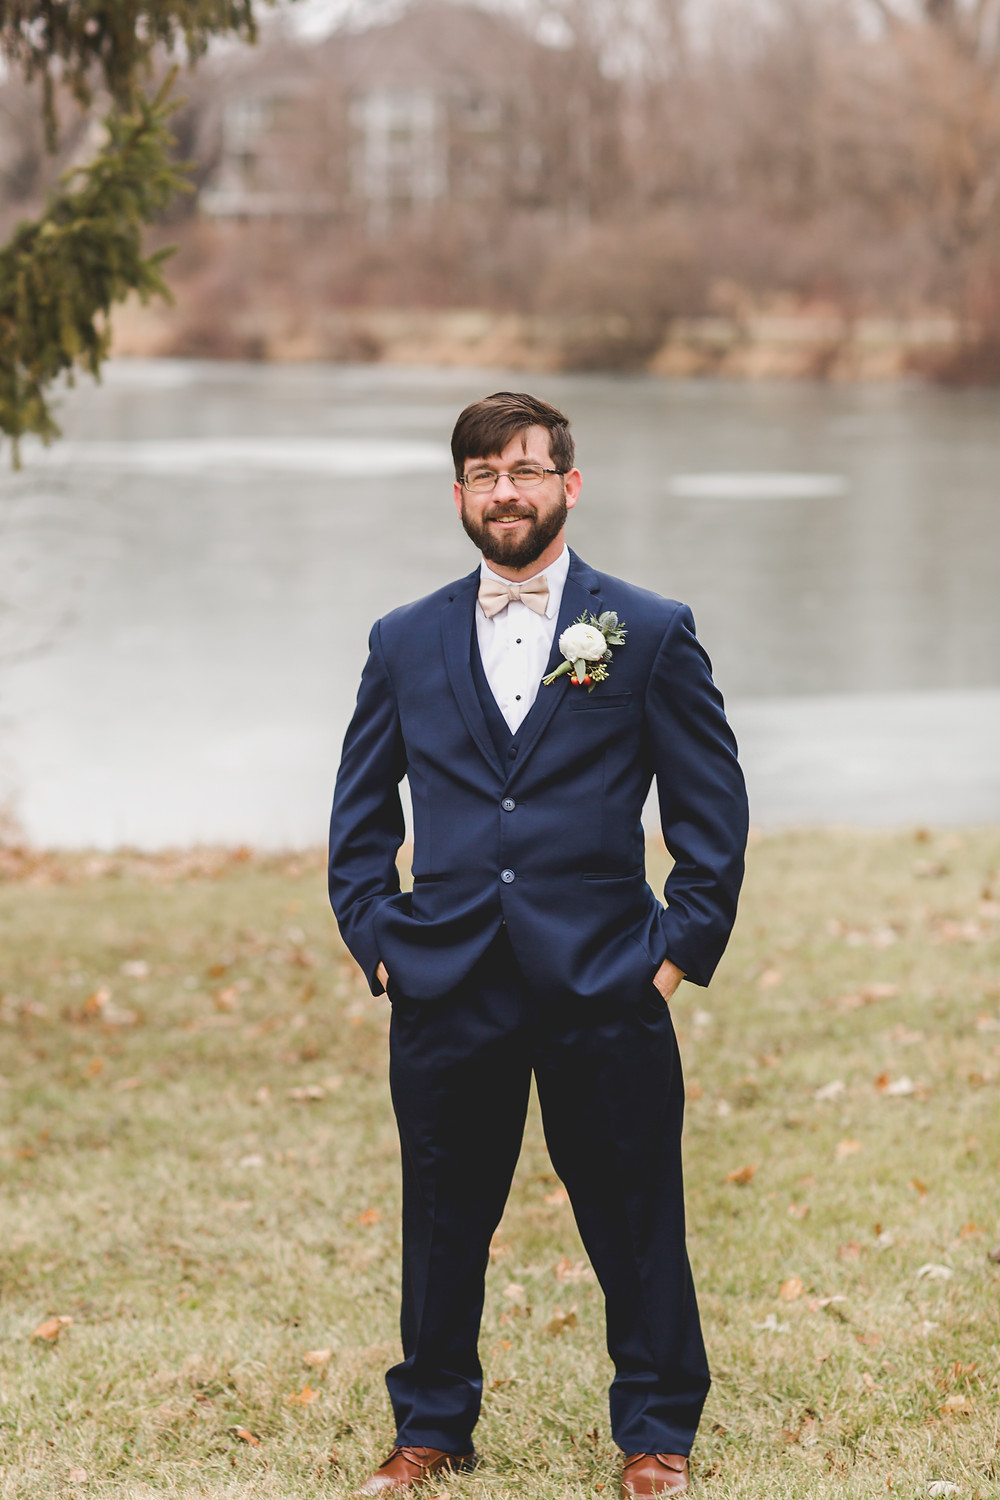 Handsome groom, Wedding photographer, wedding photography